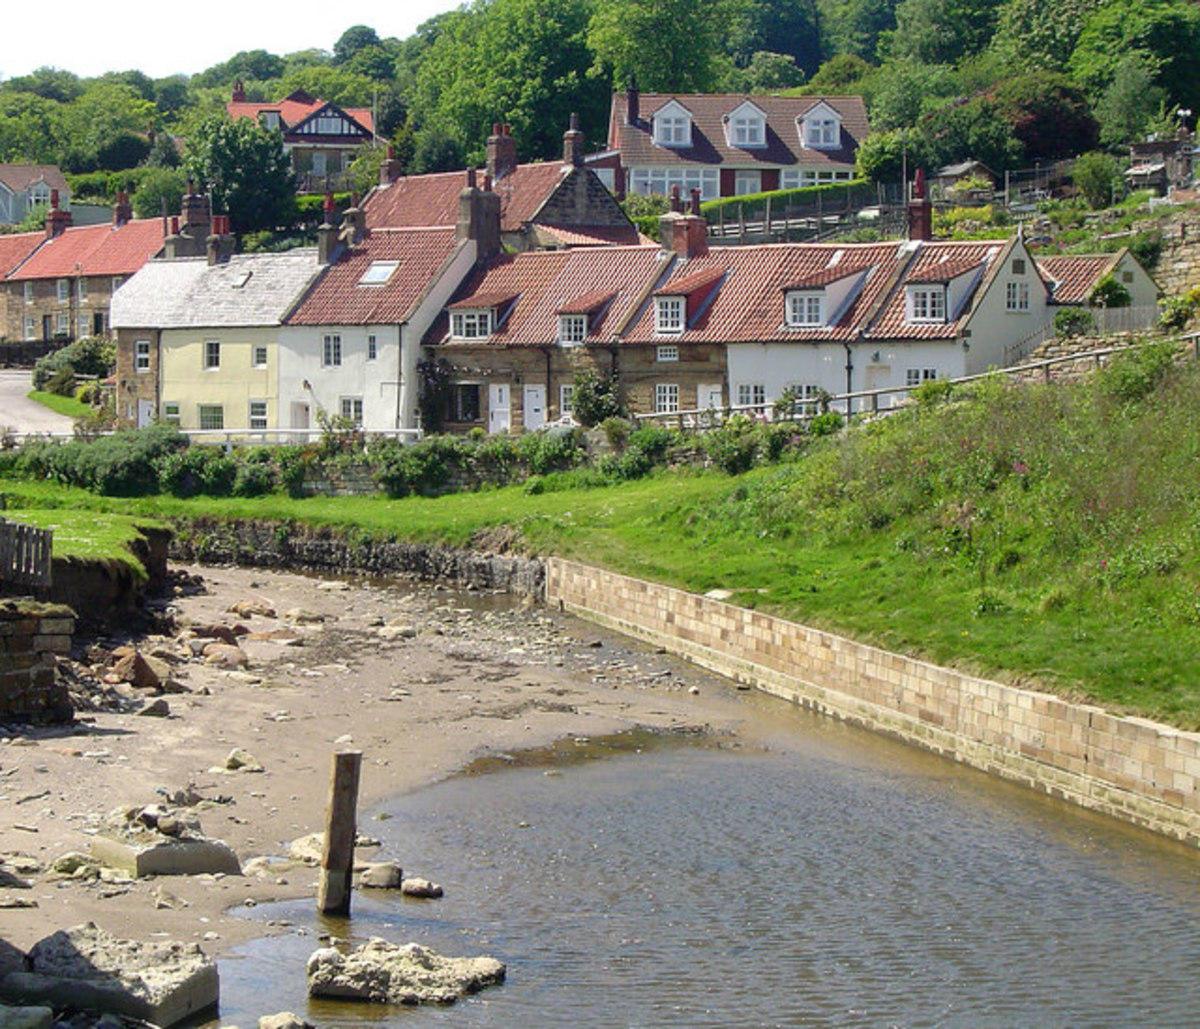 Cottages at Sandsend, one of which was where James Cook lived when apprenticed to John Walker, ship owner of Whitby